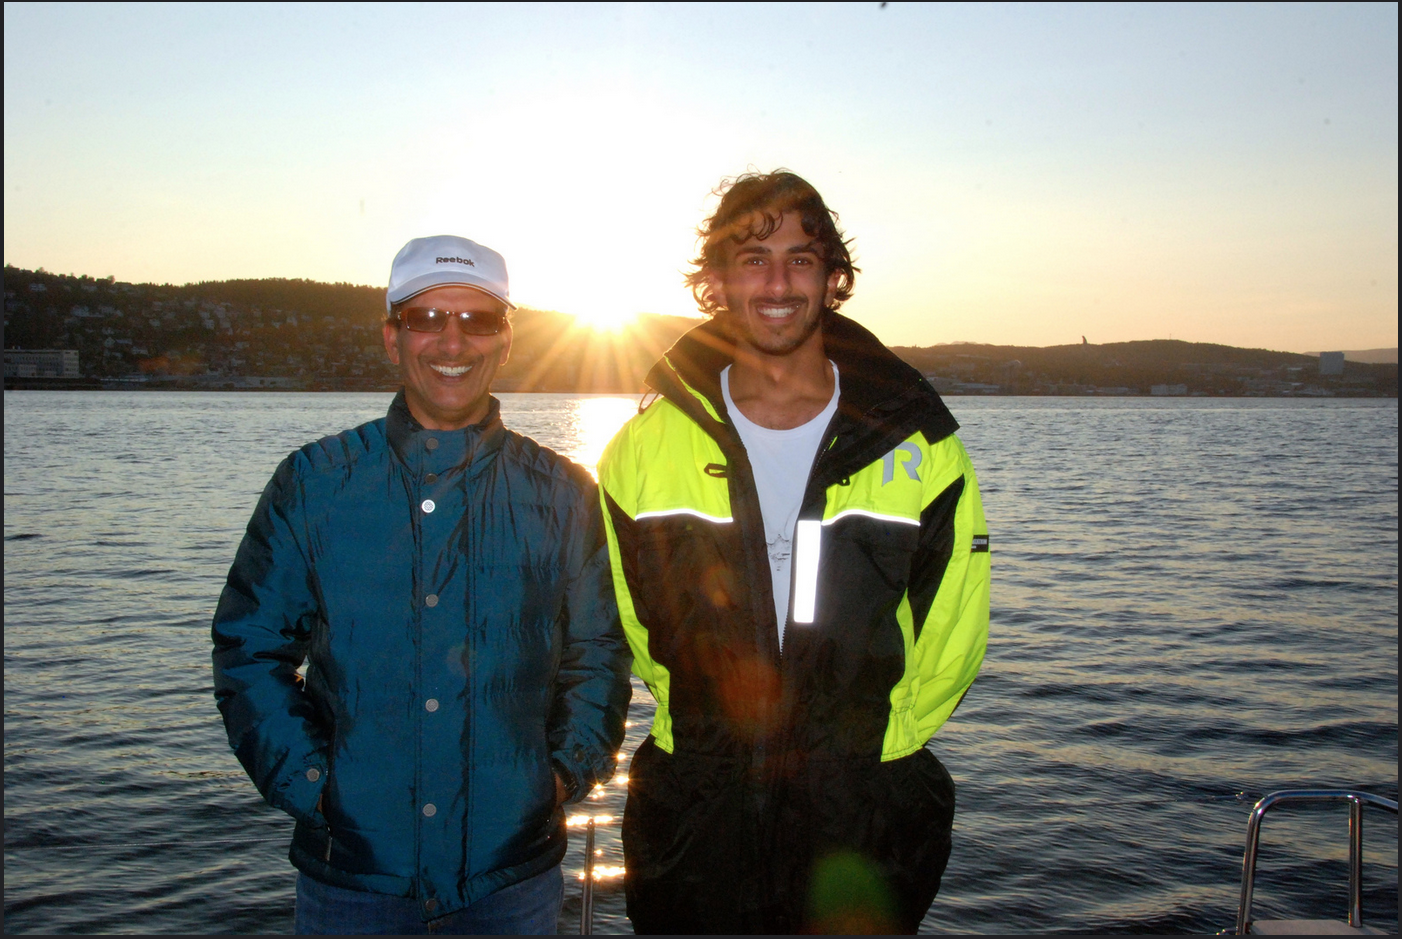 #MIdnightsun |#Tromso |UAE Guests